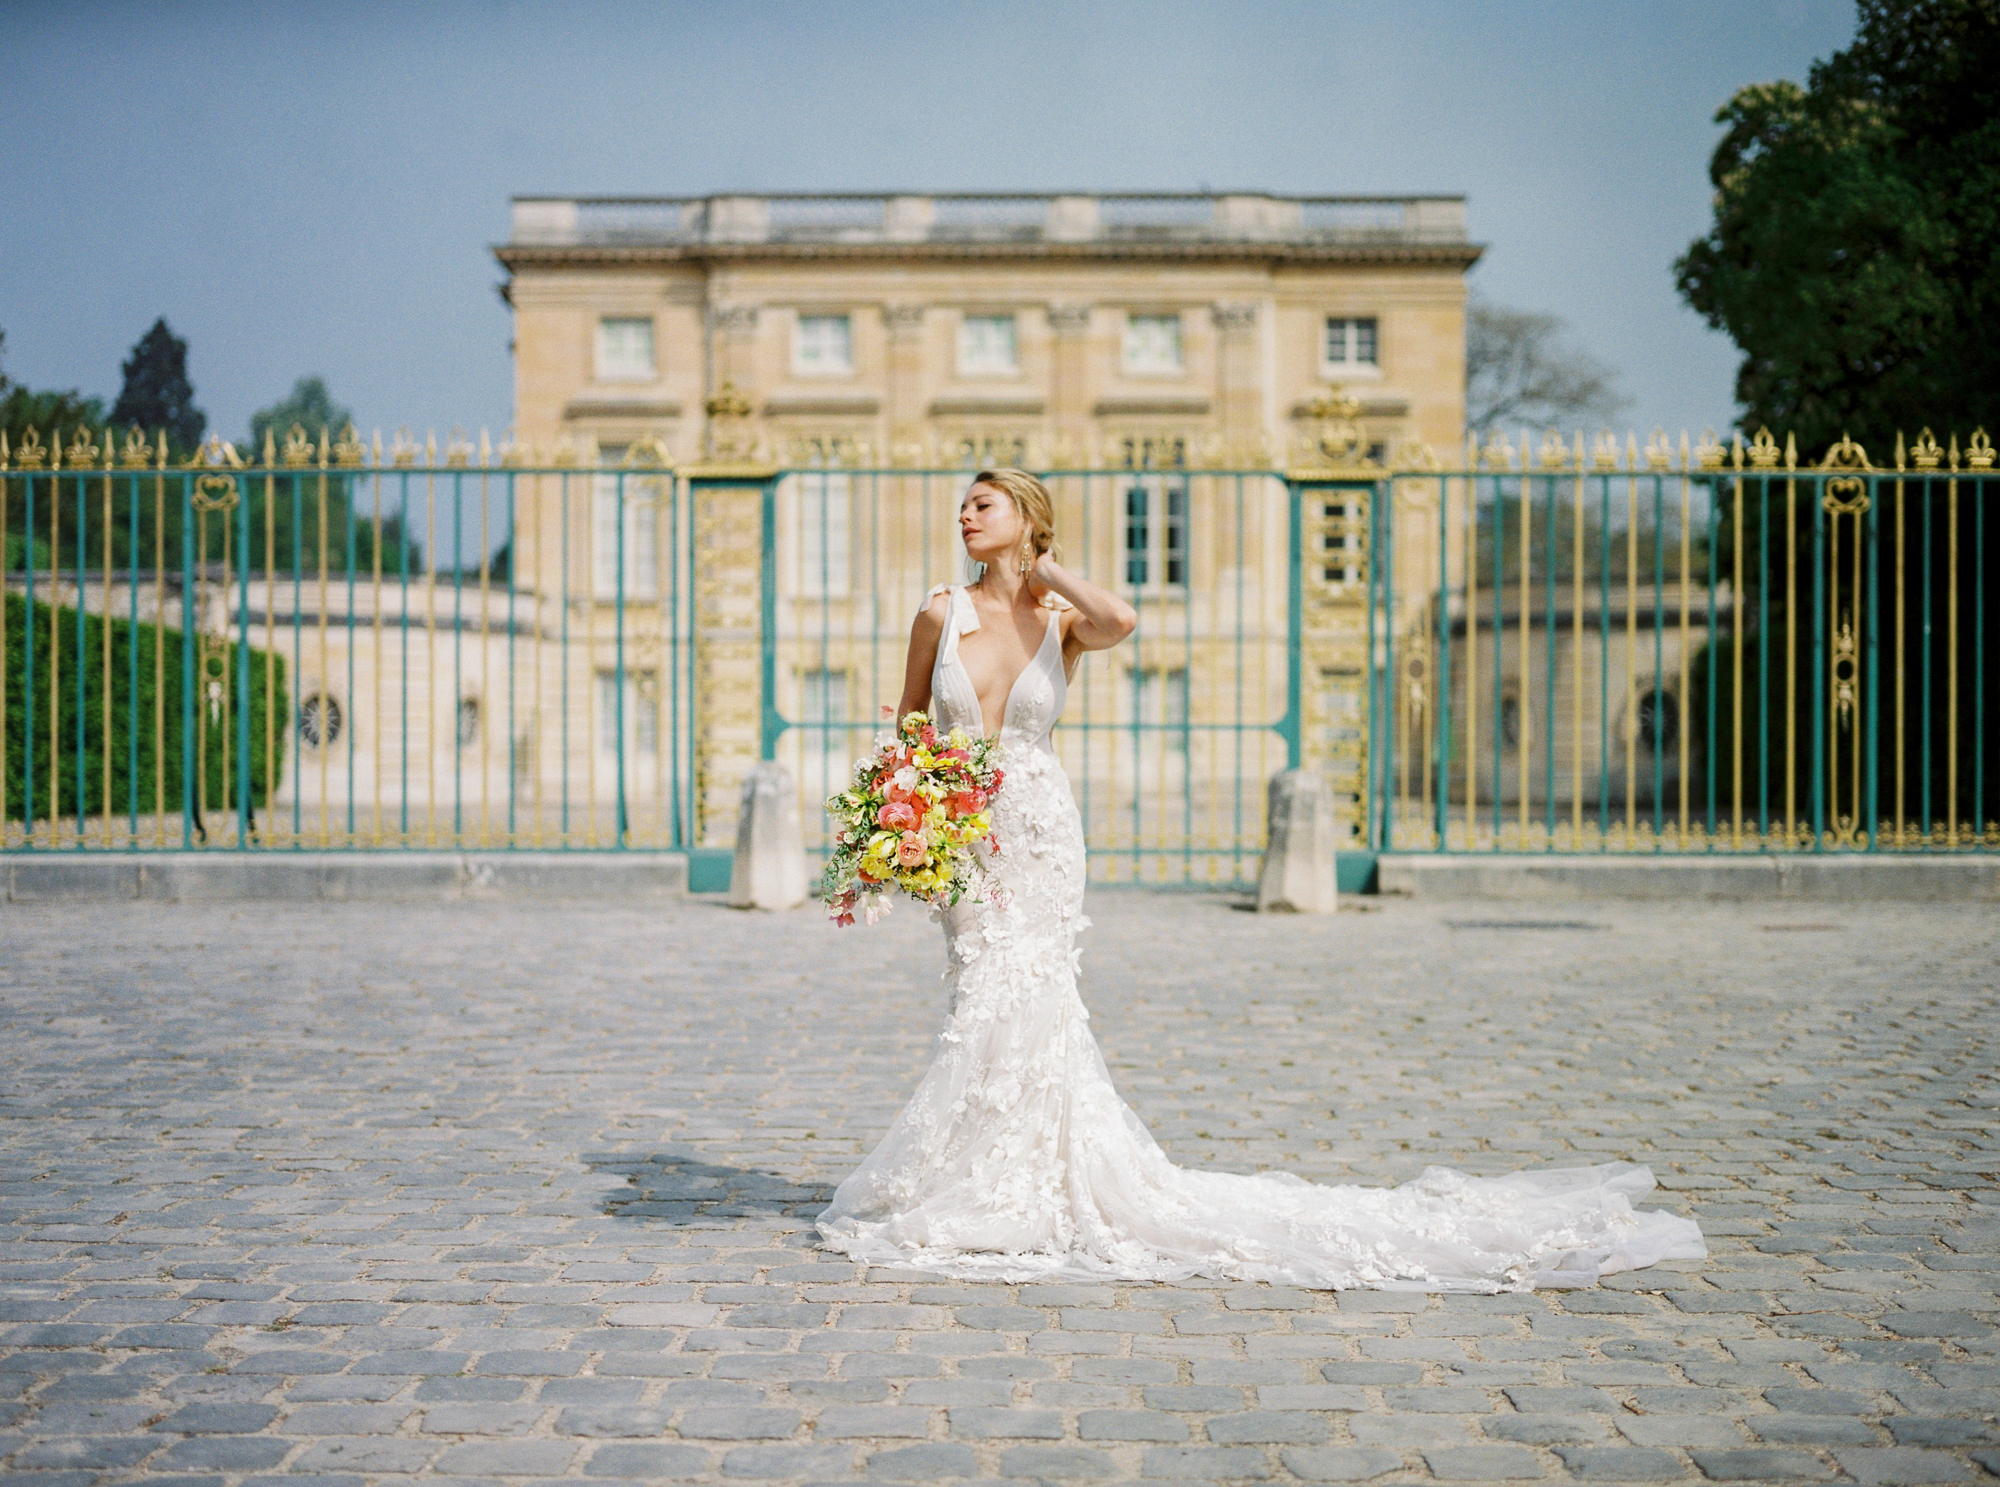 travellur_photoshoot__summer_in_versailles_wedding_dress_bridal_luxe_shoot.jpg